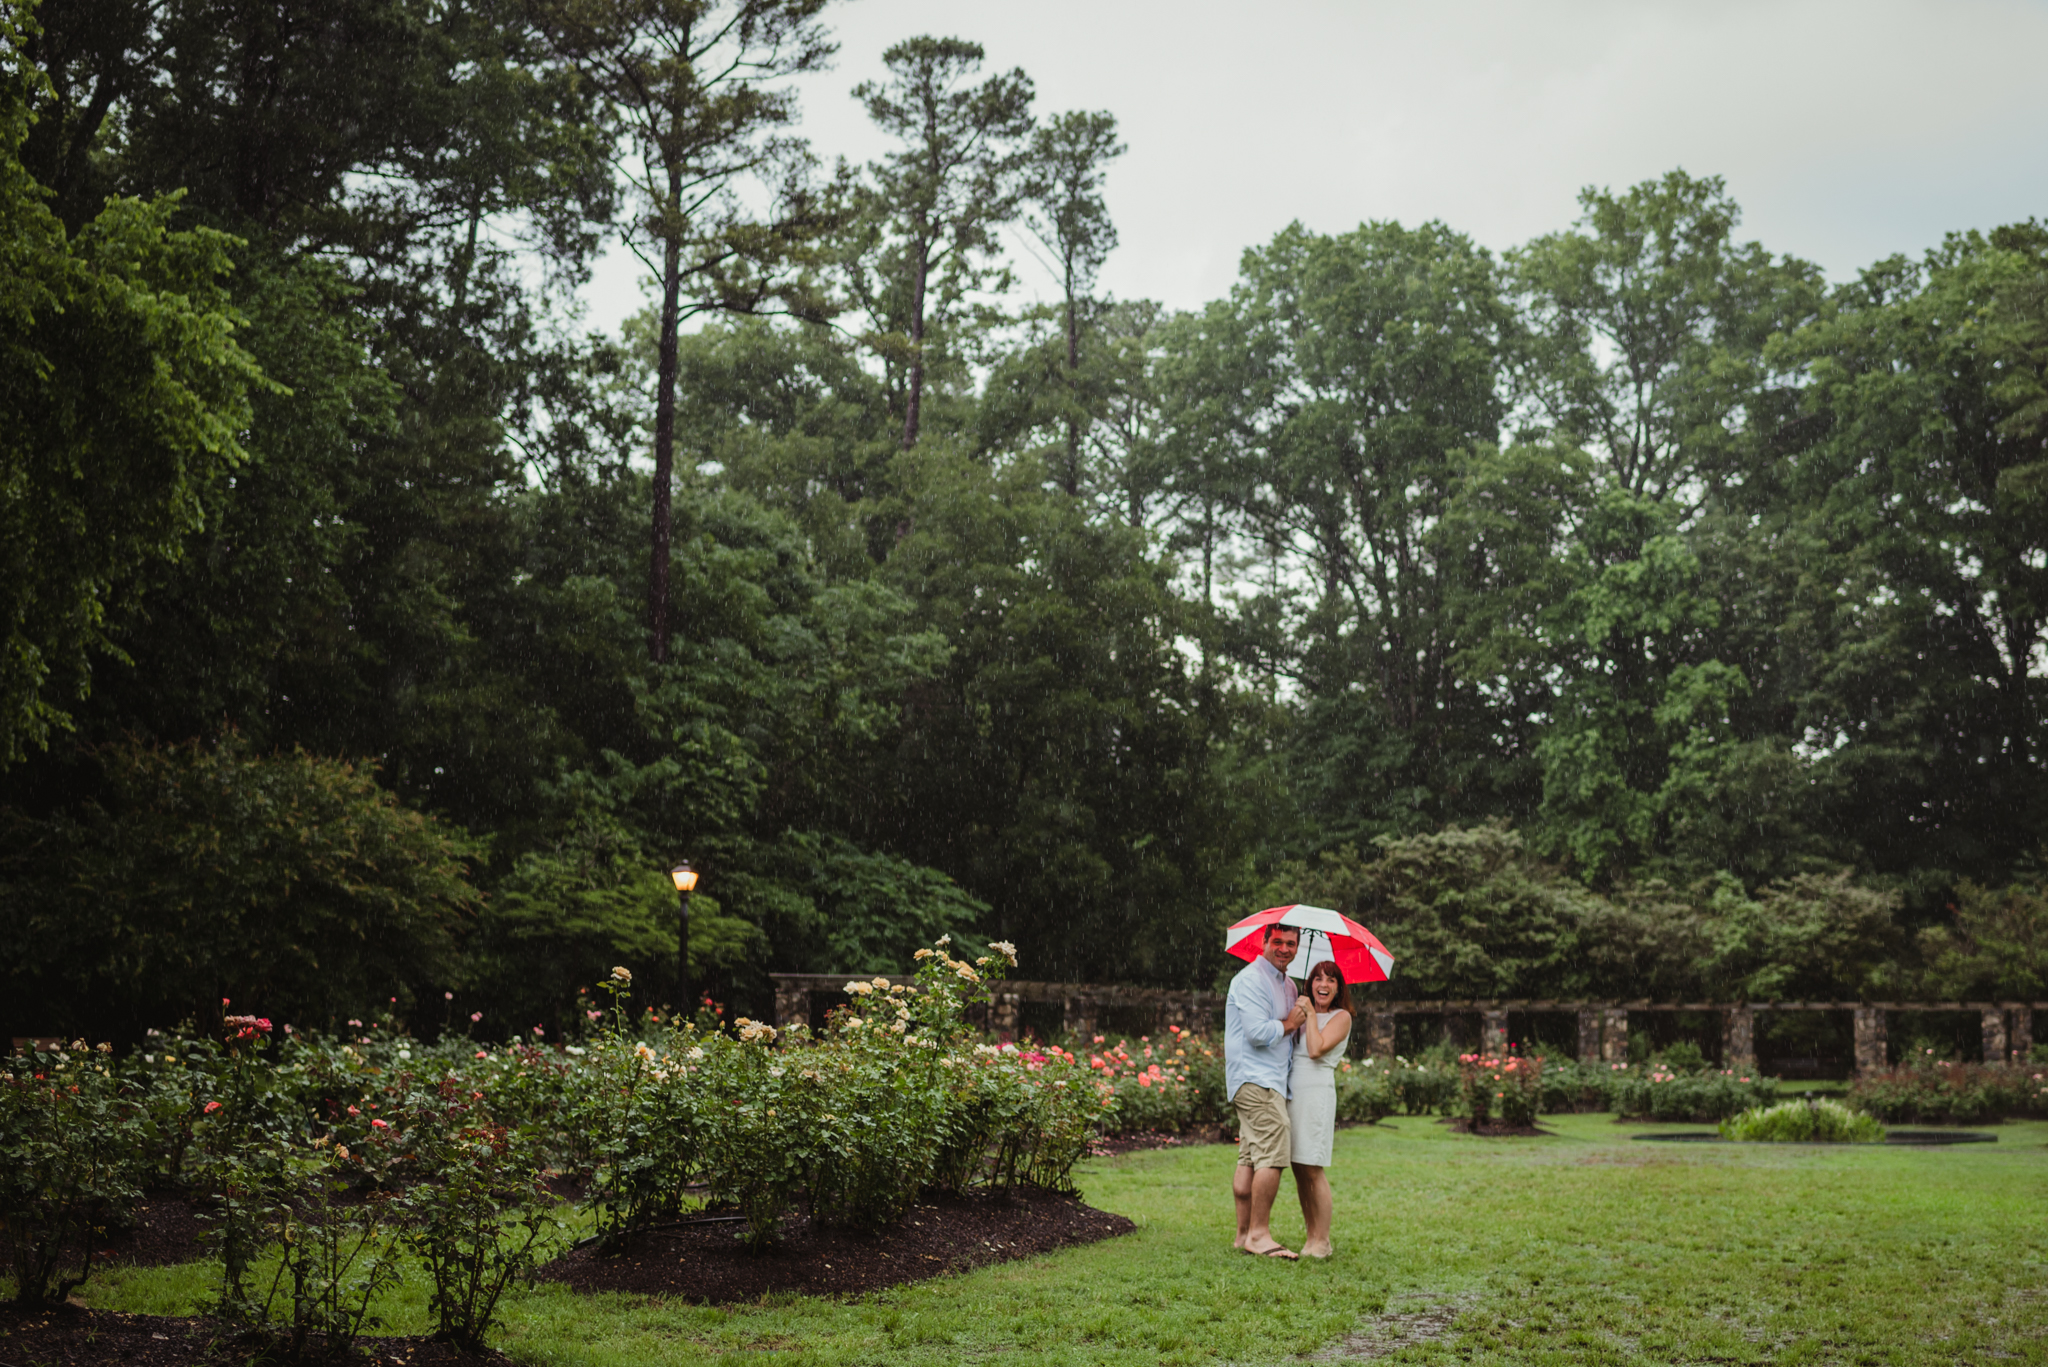 The bride and groom to be smile under the umbrella during the rainstorm in Raleigh, during their engagement session with Rose Trail Images.